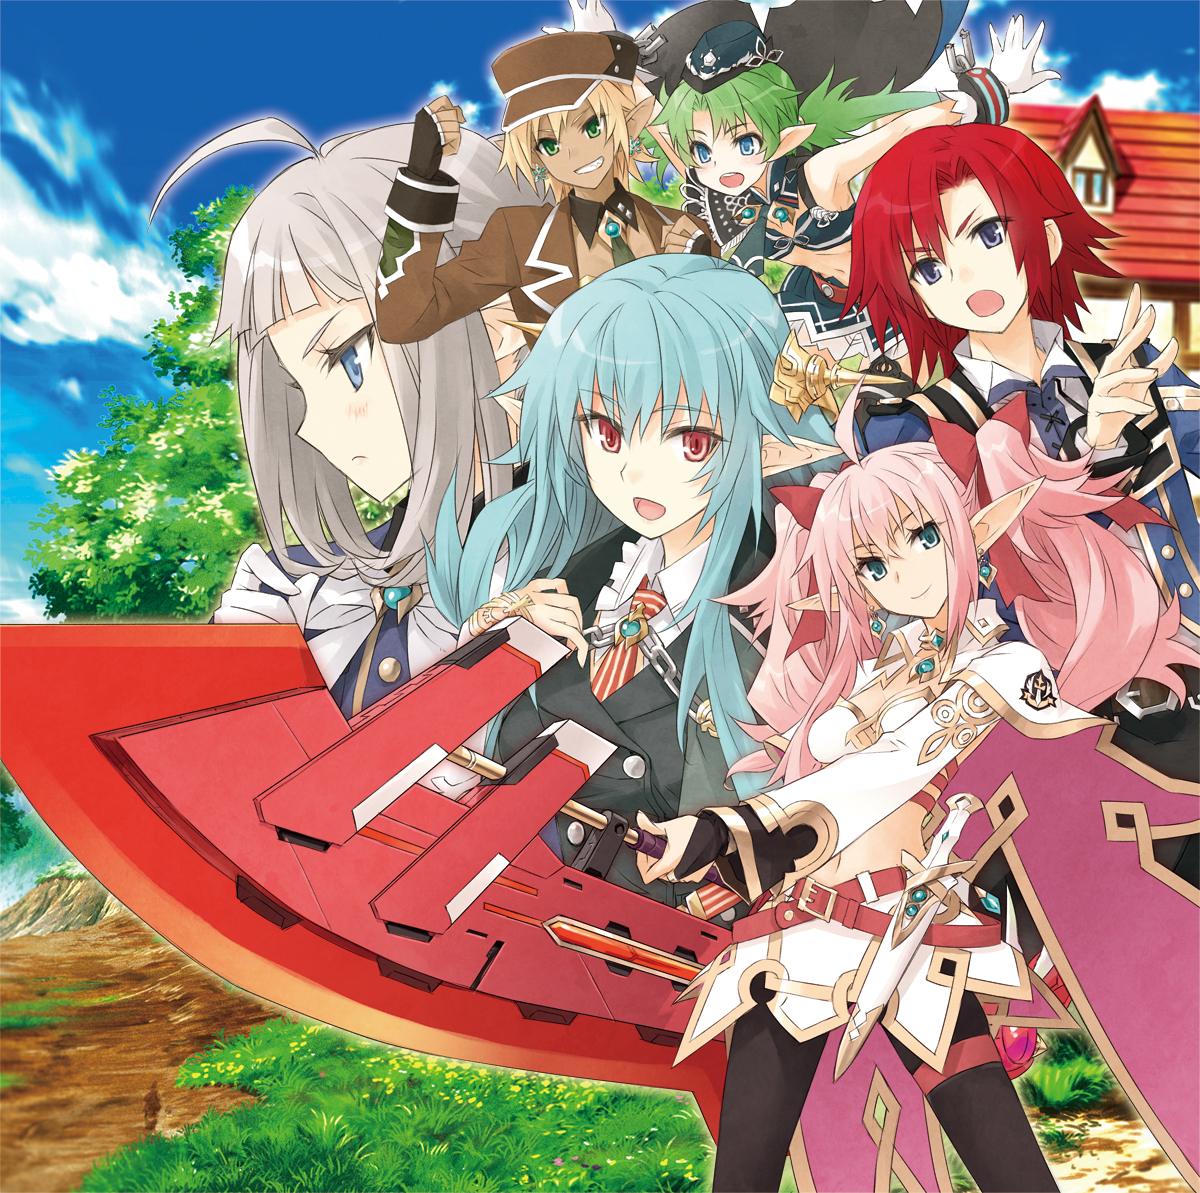 Lord of Magna: Maiden Heaven For Nintendo 3DS Coming To North America ThisSpring